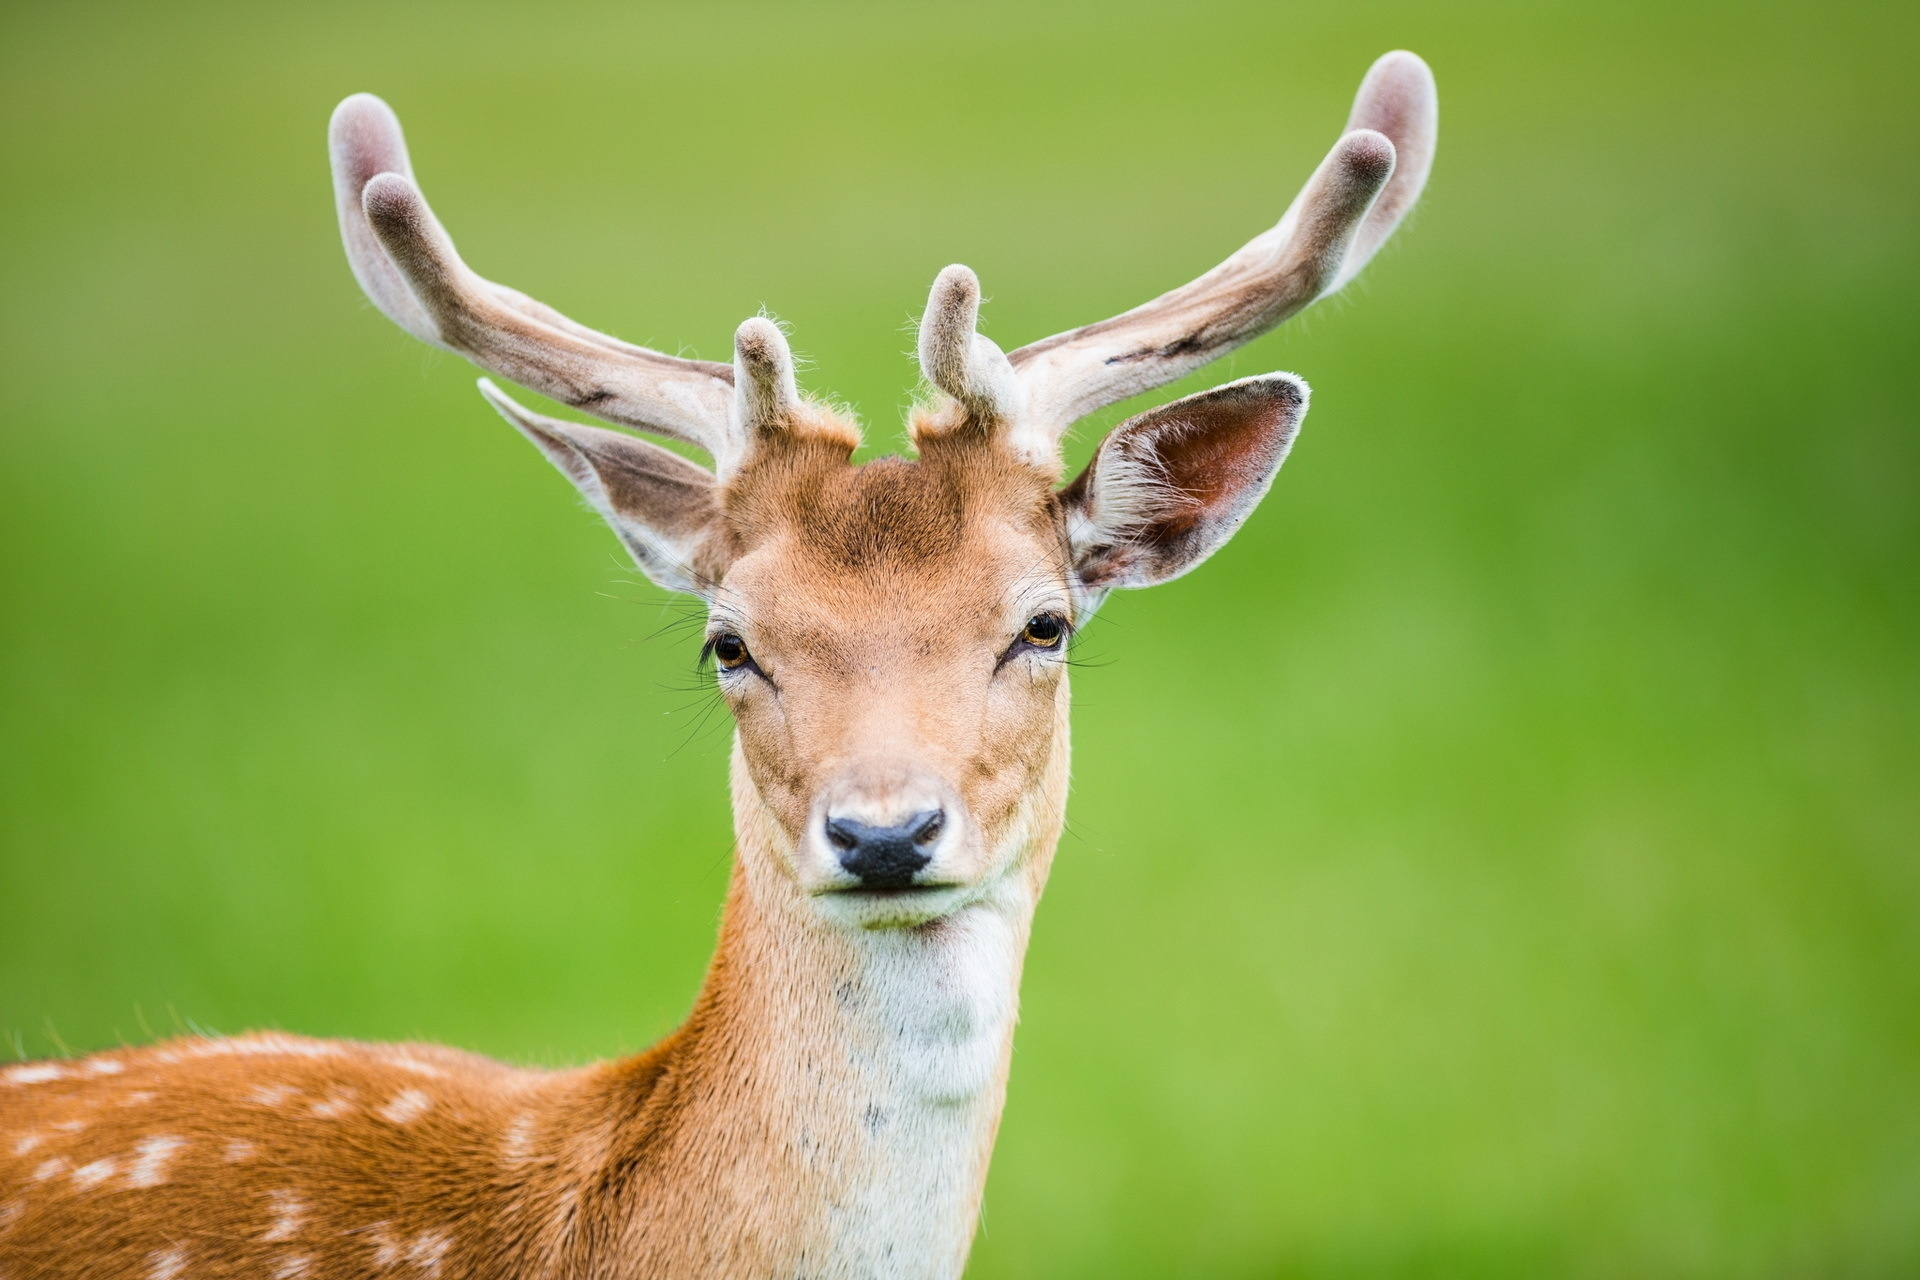 130499 download wallpaper Animals, Deer, Horns, Spotted, Spotty screensavers and pictures for free